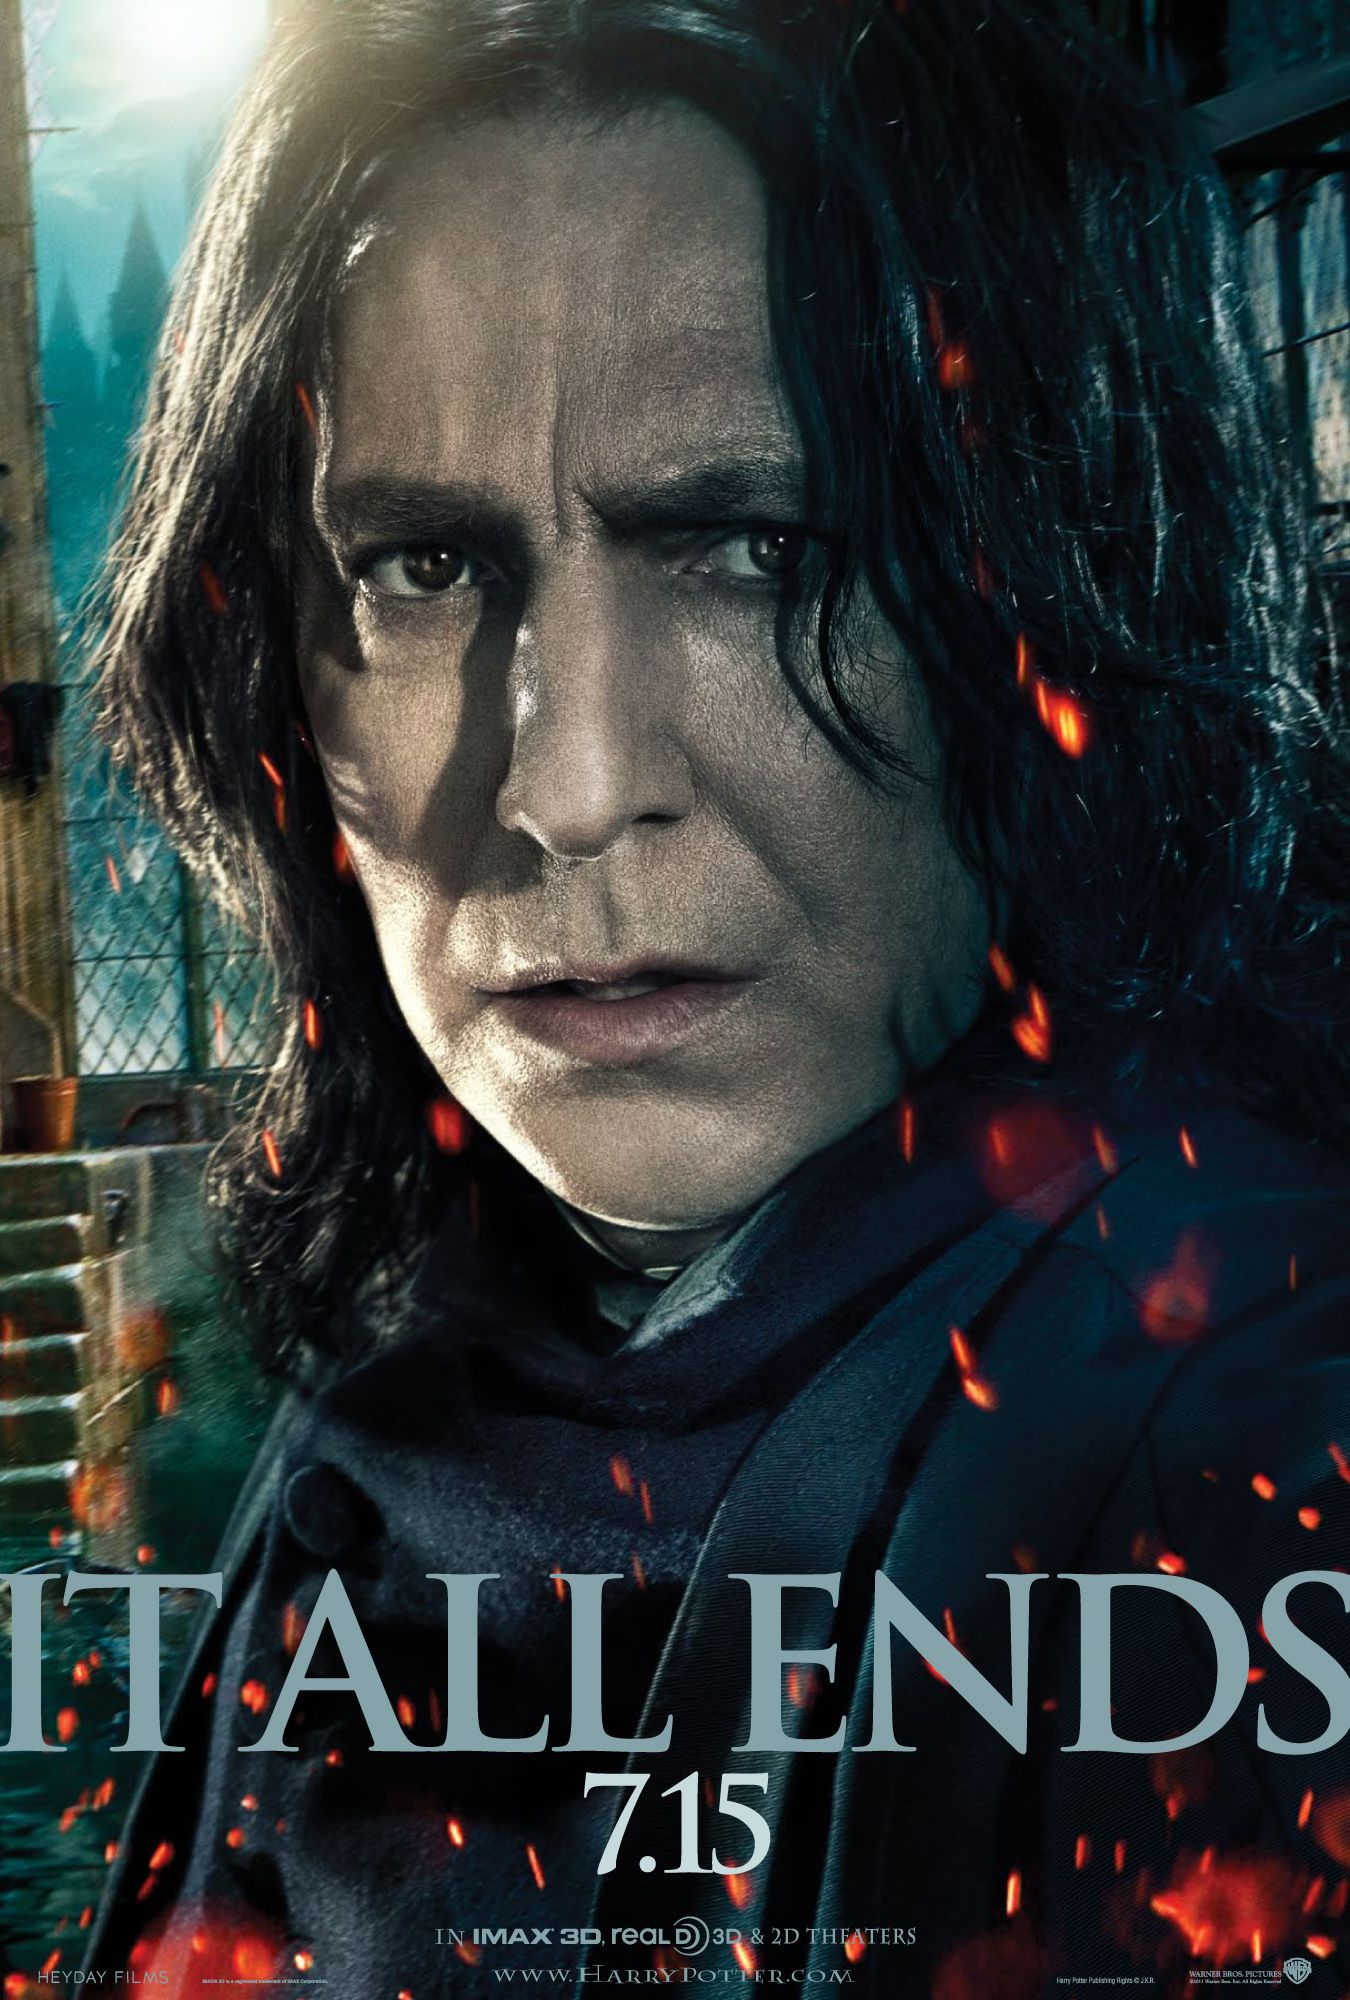 Harry Potter Deathly Hallows Part 2 Snape Poster